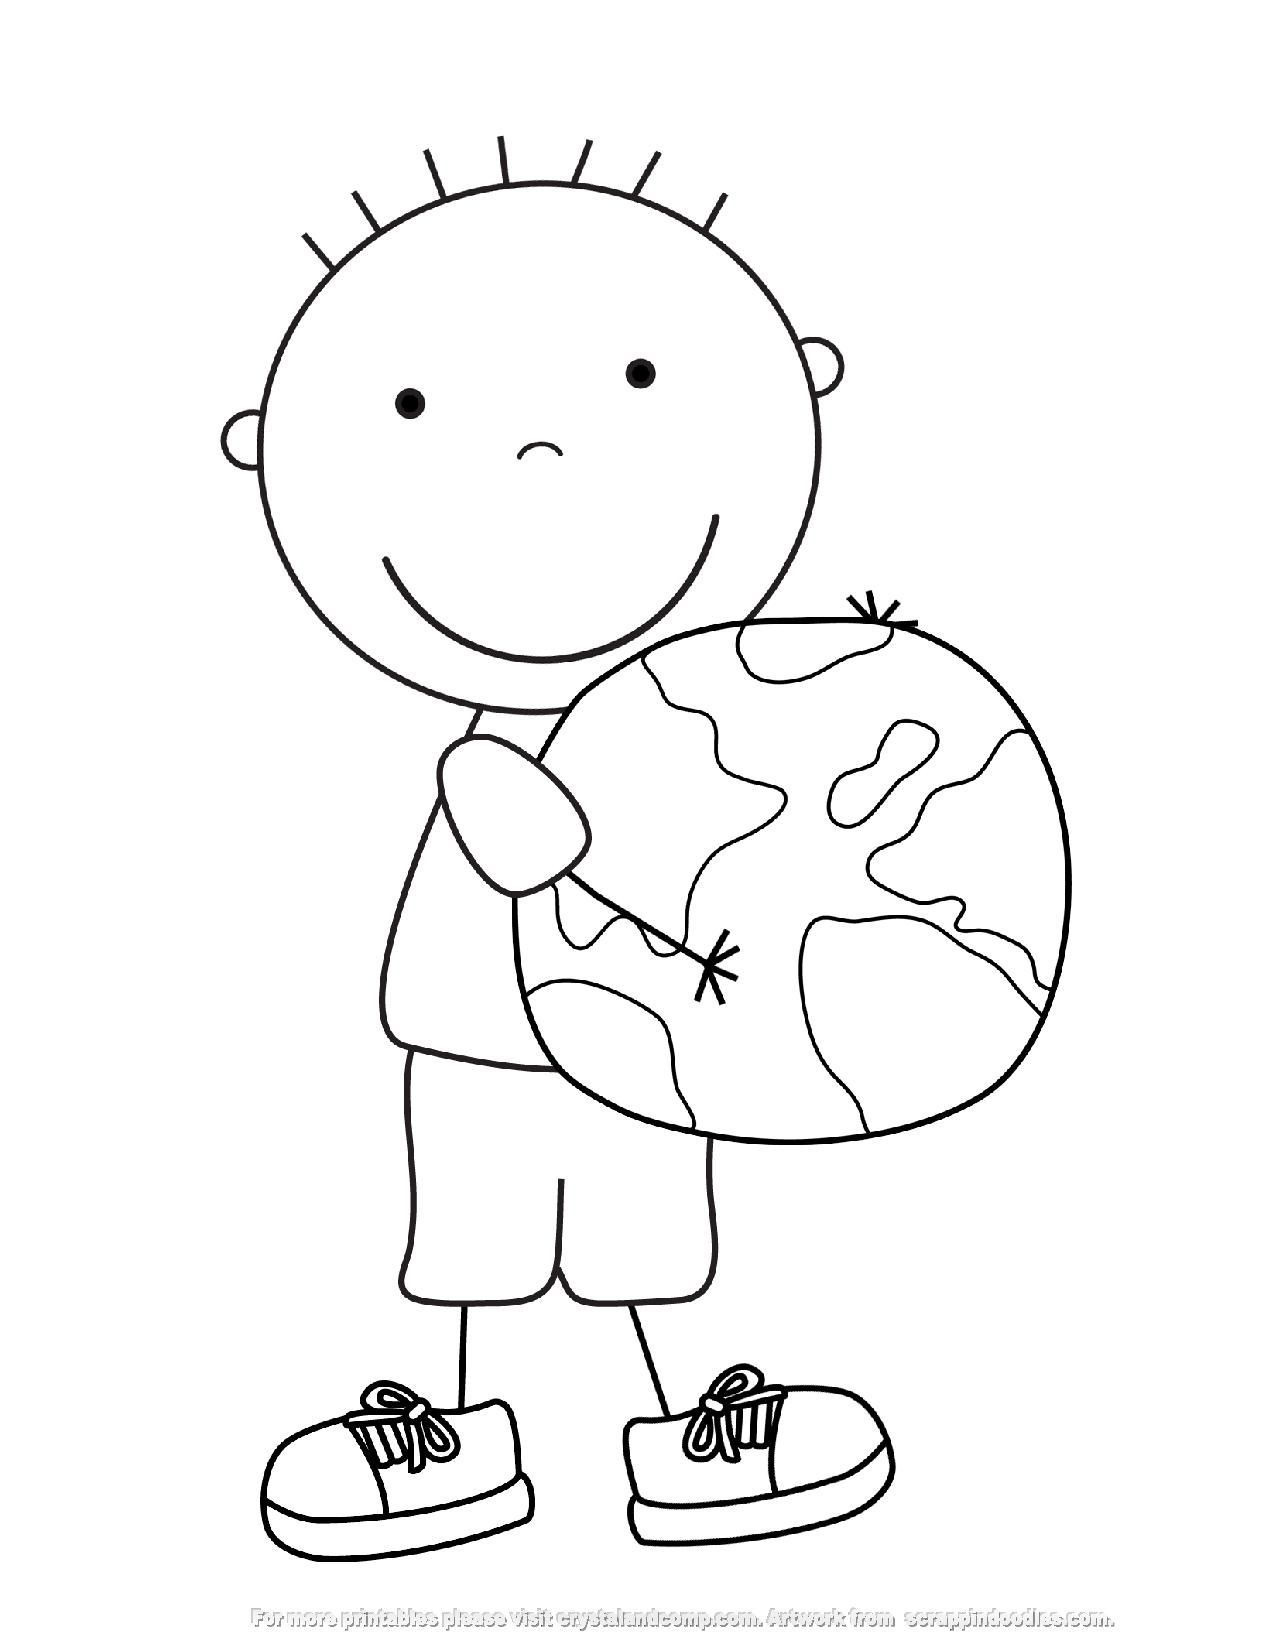 Earth day coloring pages for adults - Explore Earth Day Coloring Pages And More